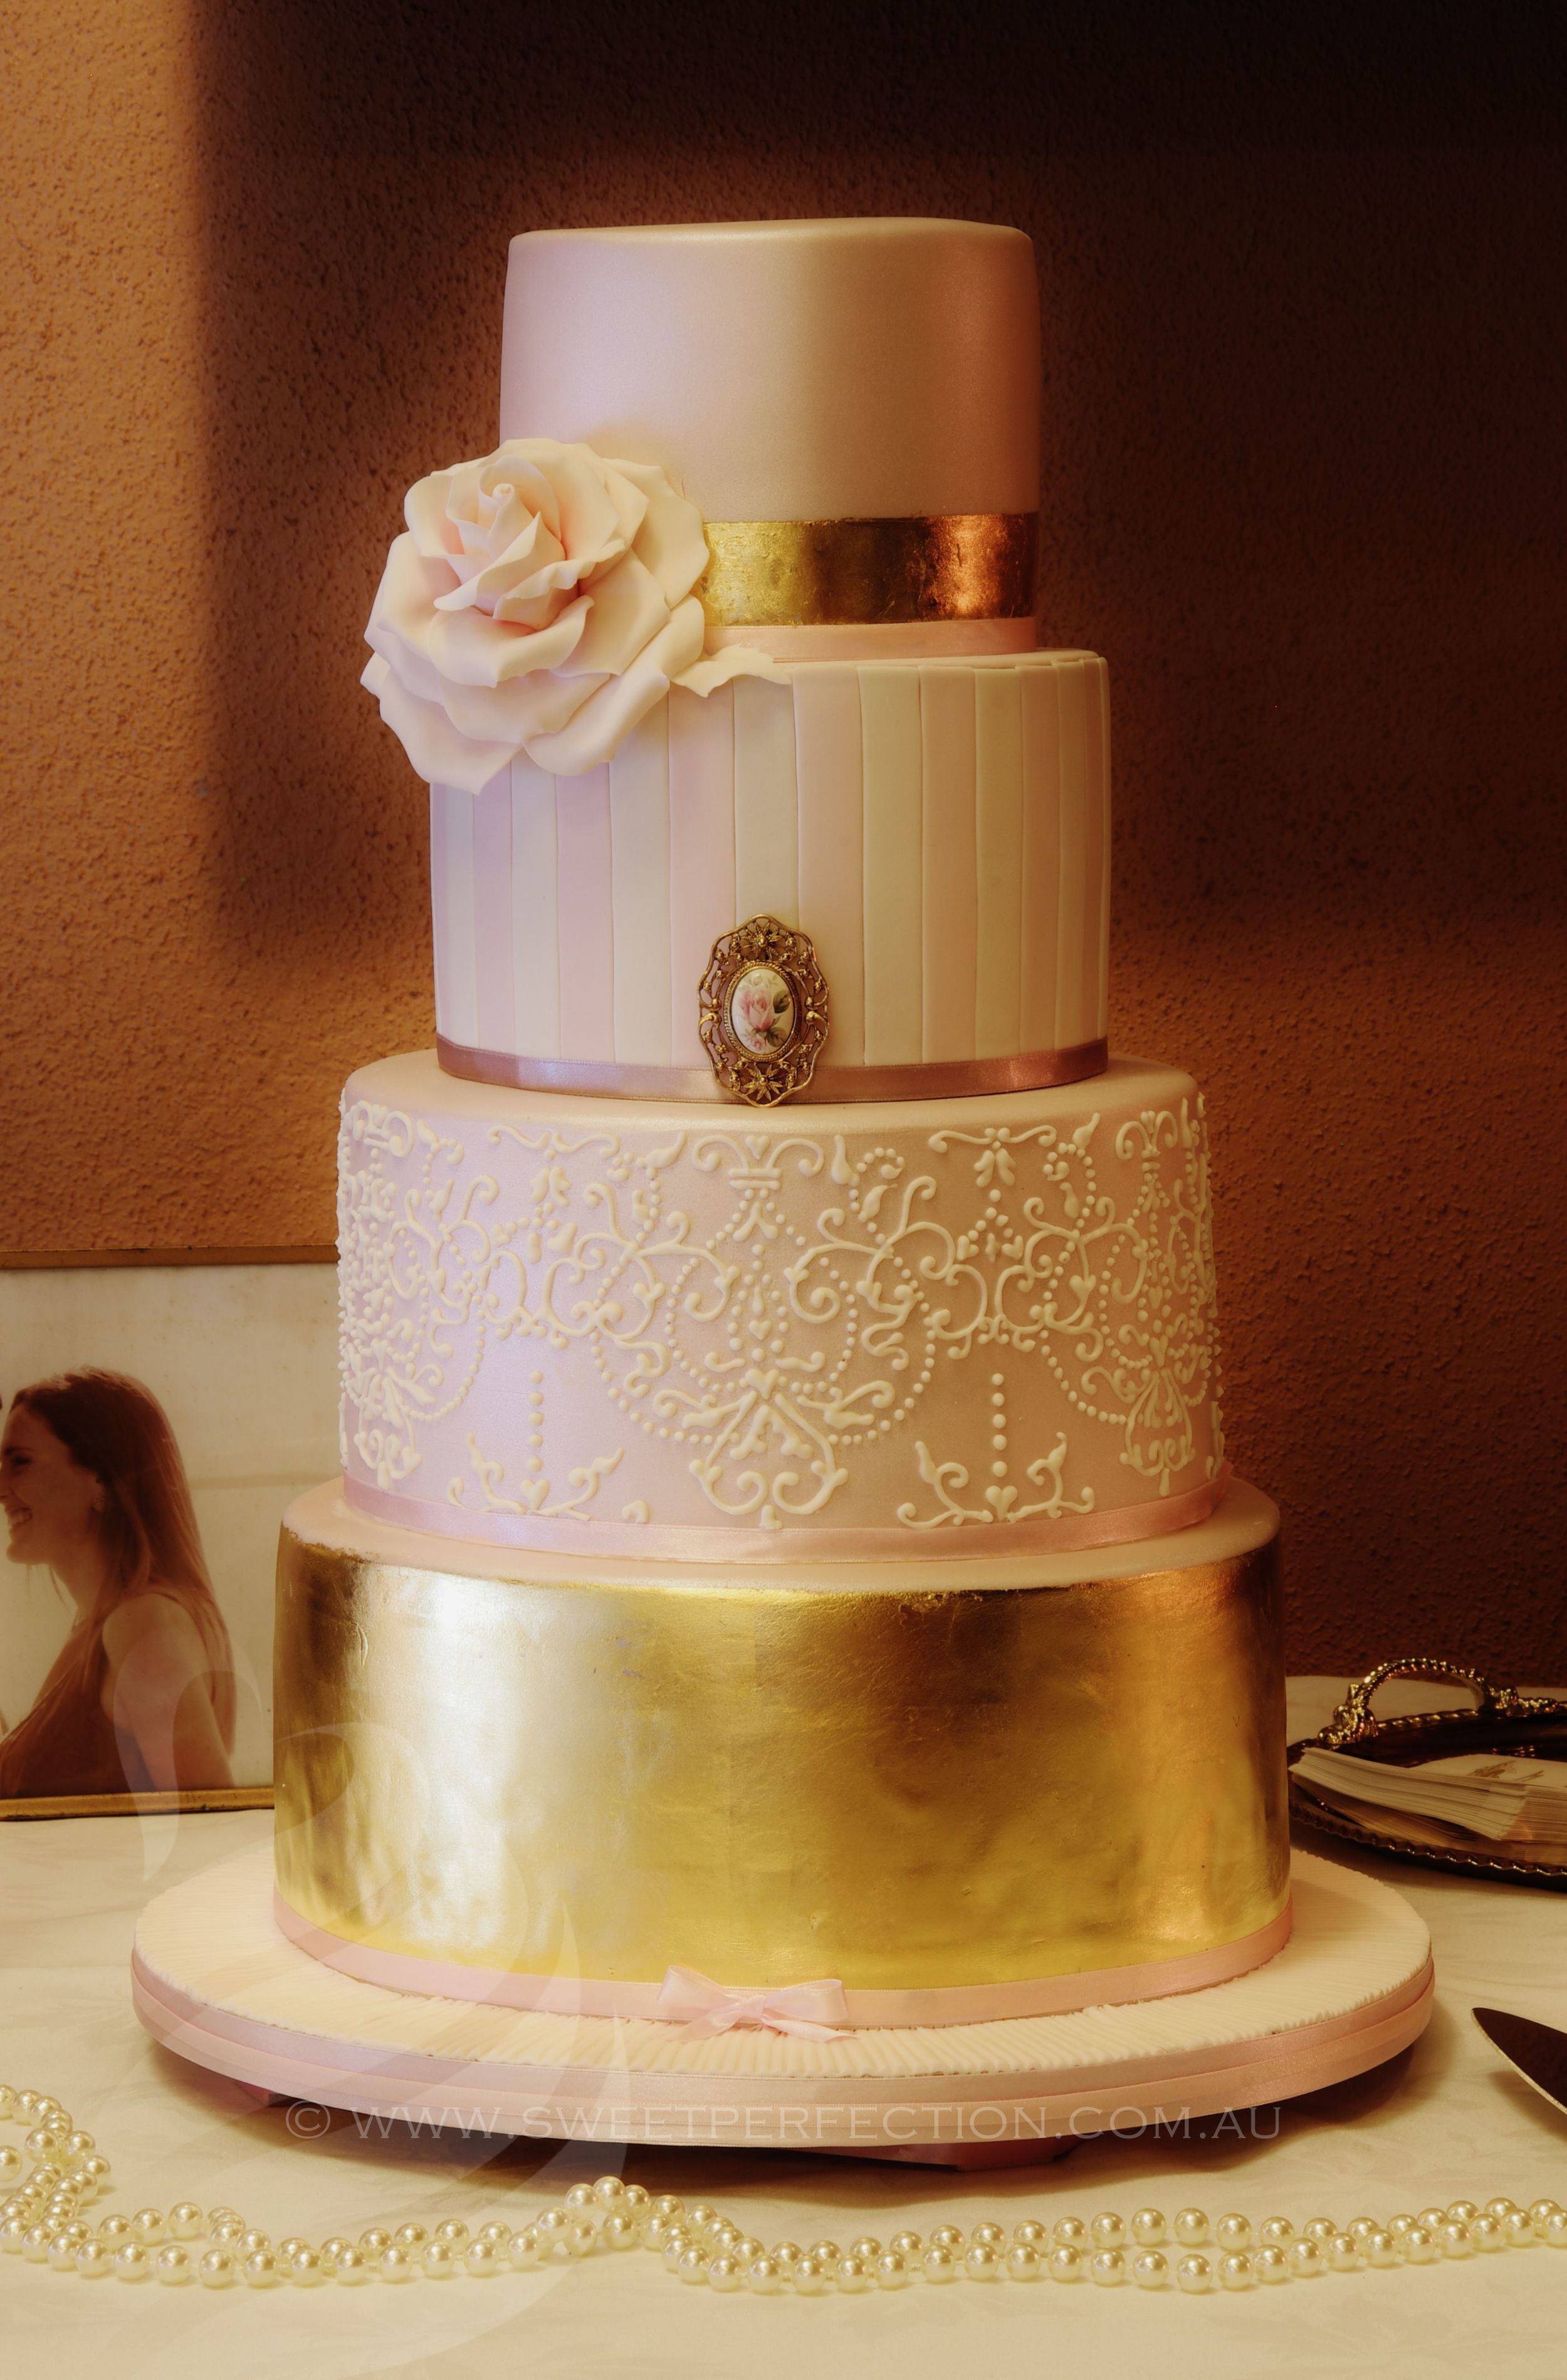 Cake based on a Faye Cahill Design. A